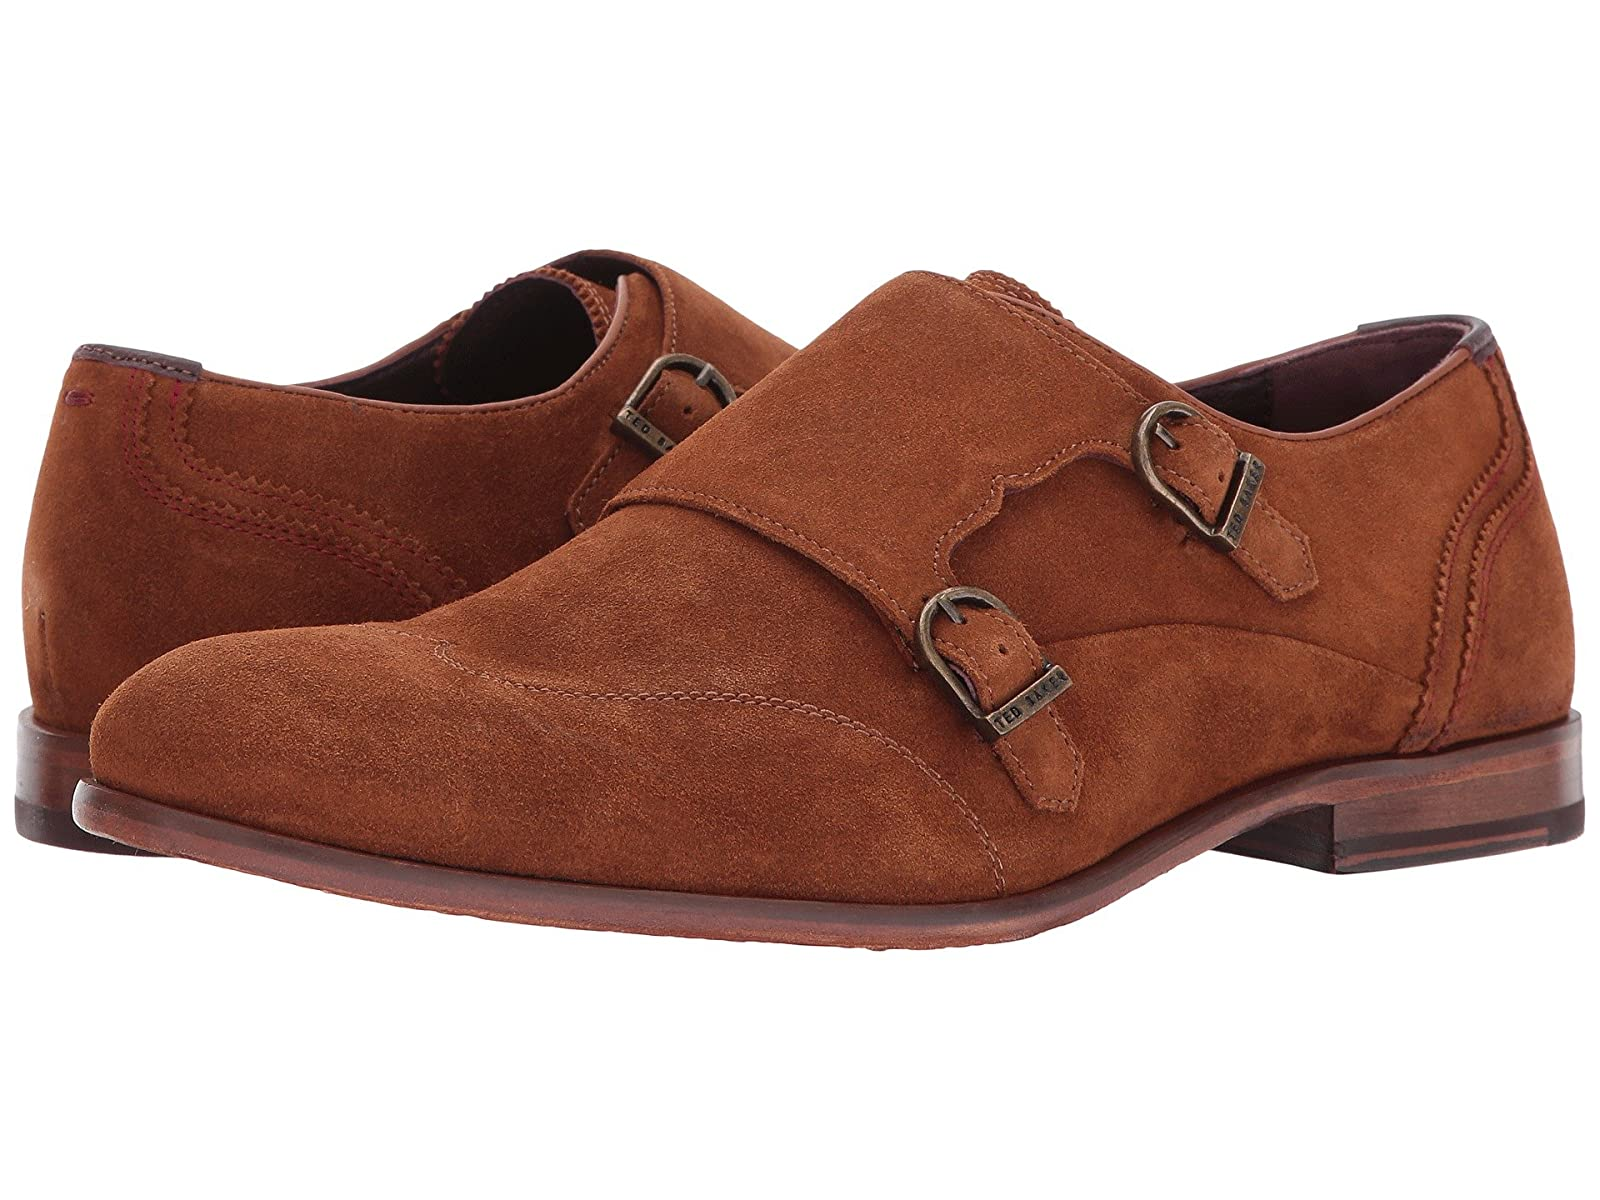 Ted Baker RovereCheap and distinctive eye-catching shoes